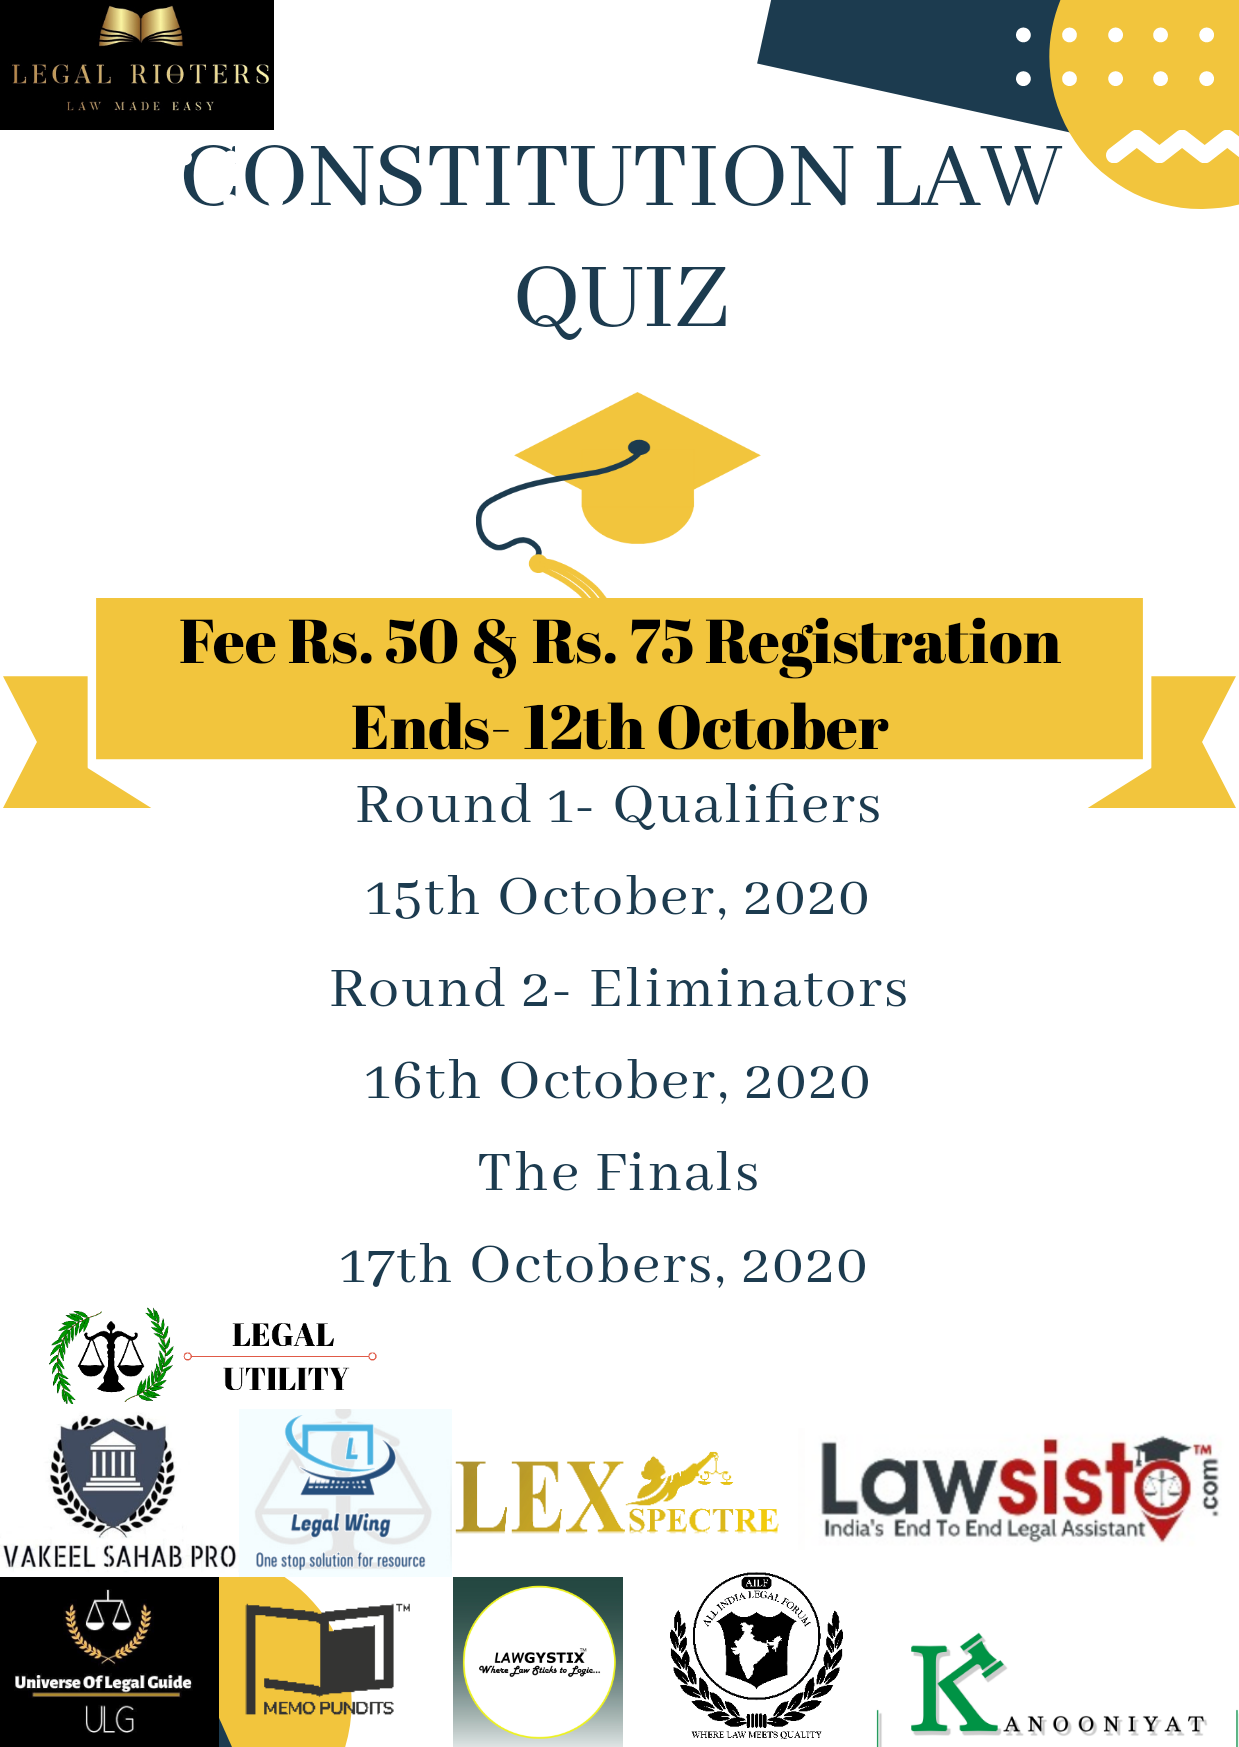 Constitution Law Quiz by Legal Rioters